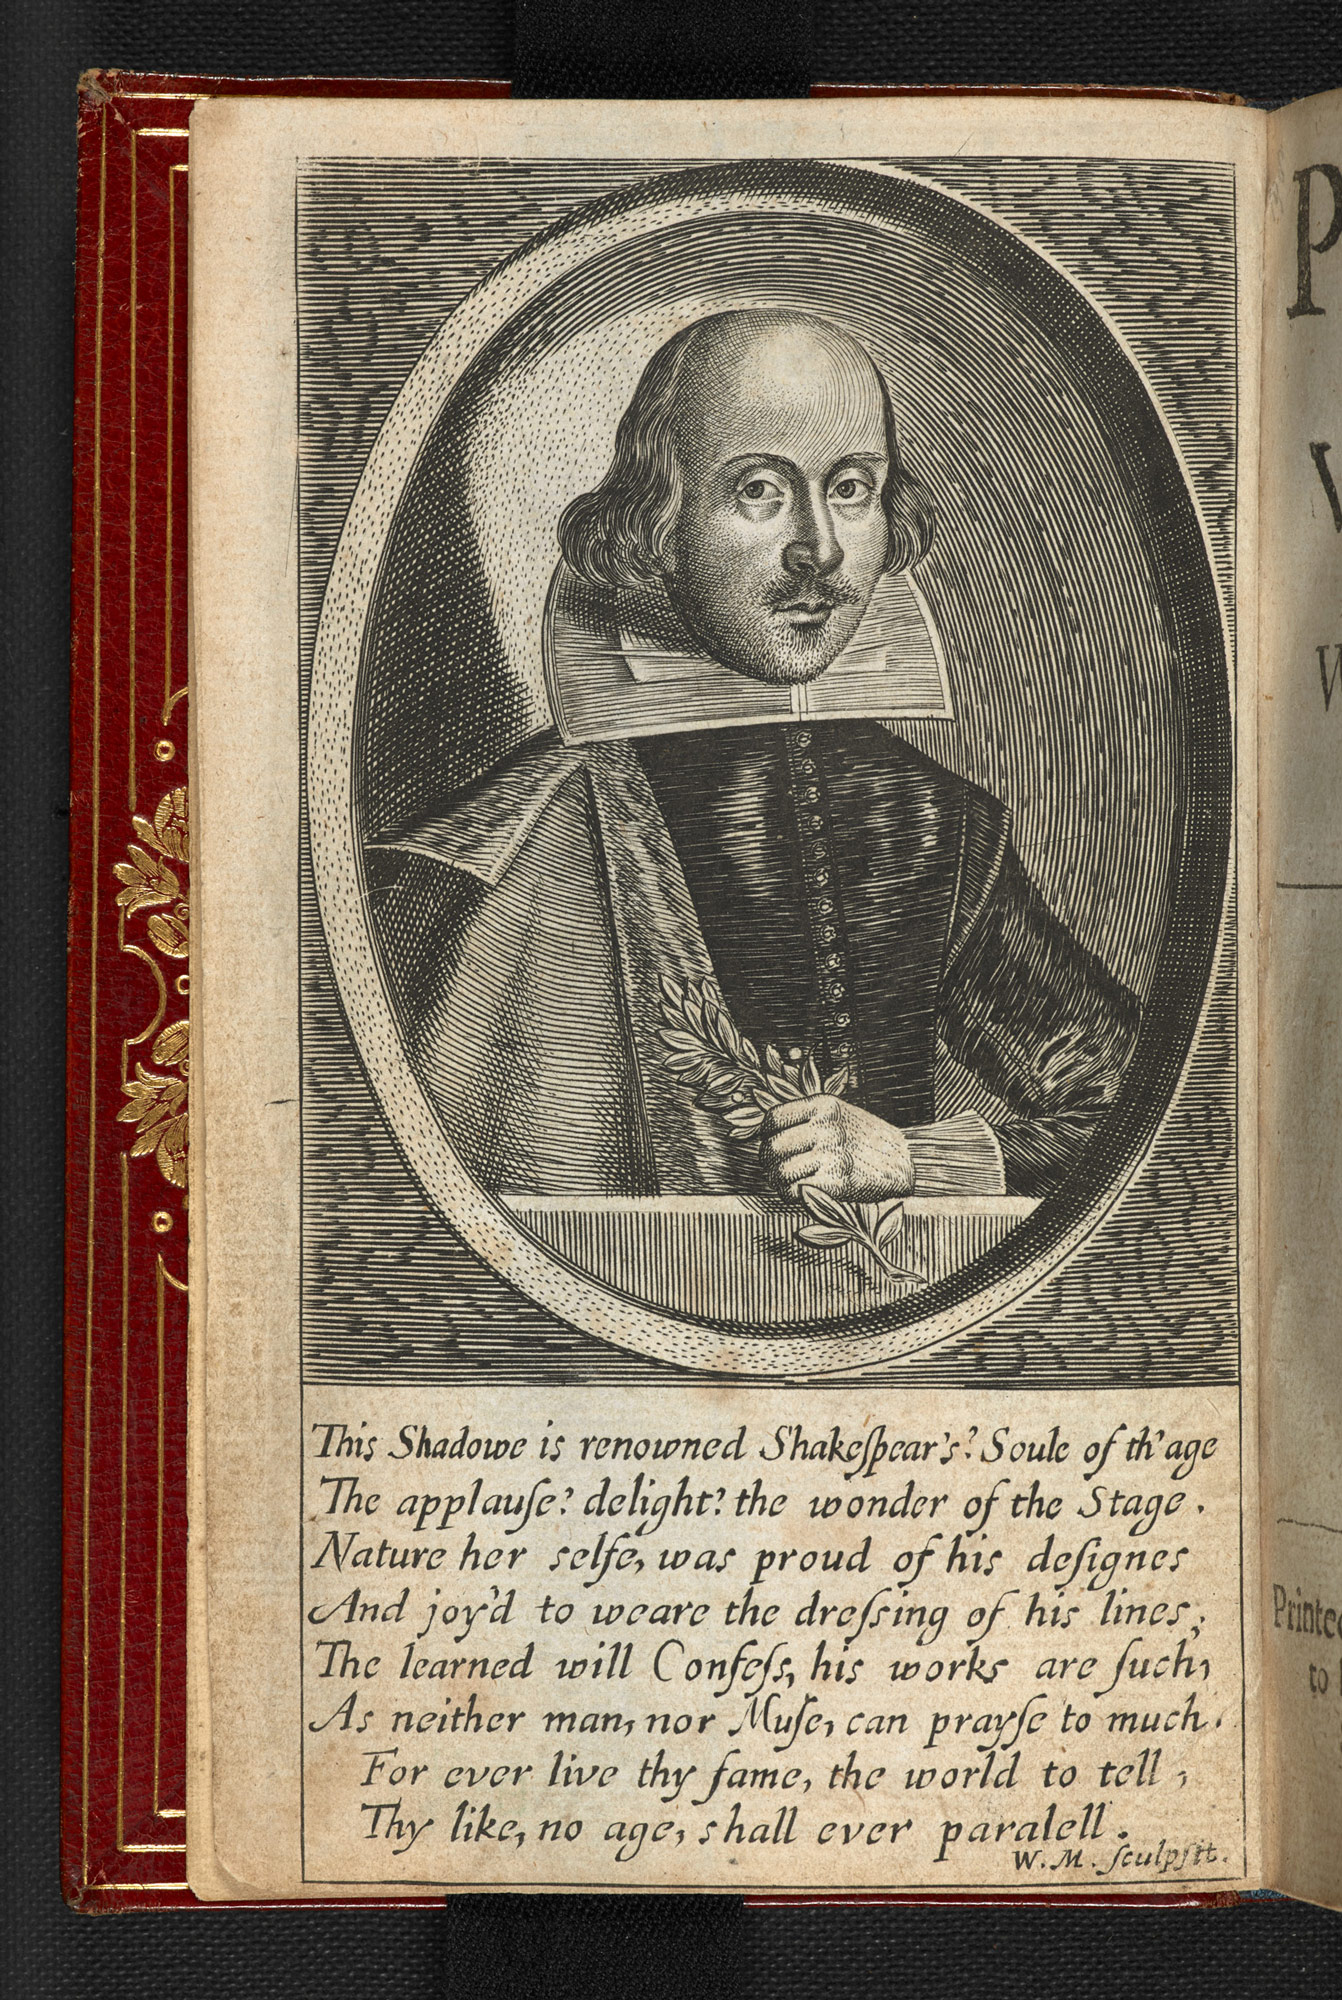 Shakespeare's Collected Poems, 1640